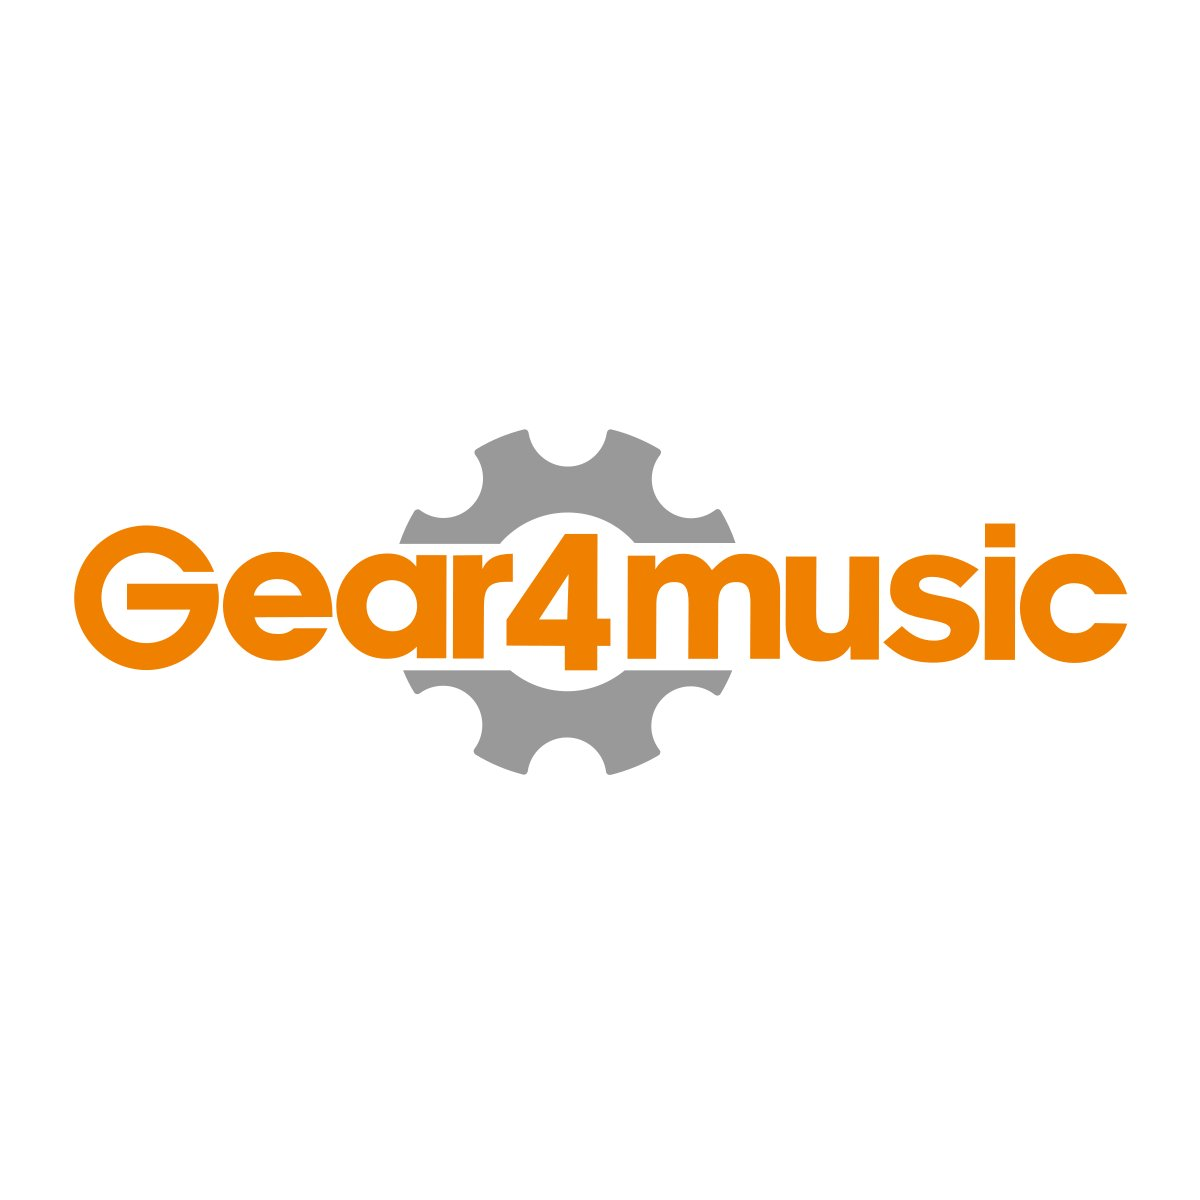 Deluxe Classical Guitar By Gear4music